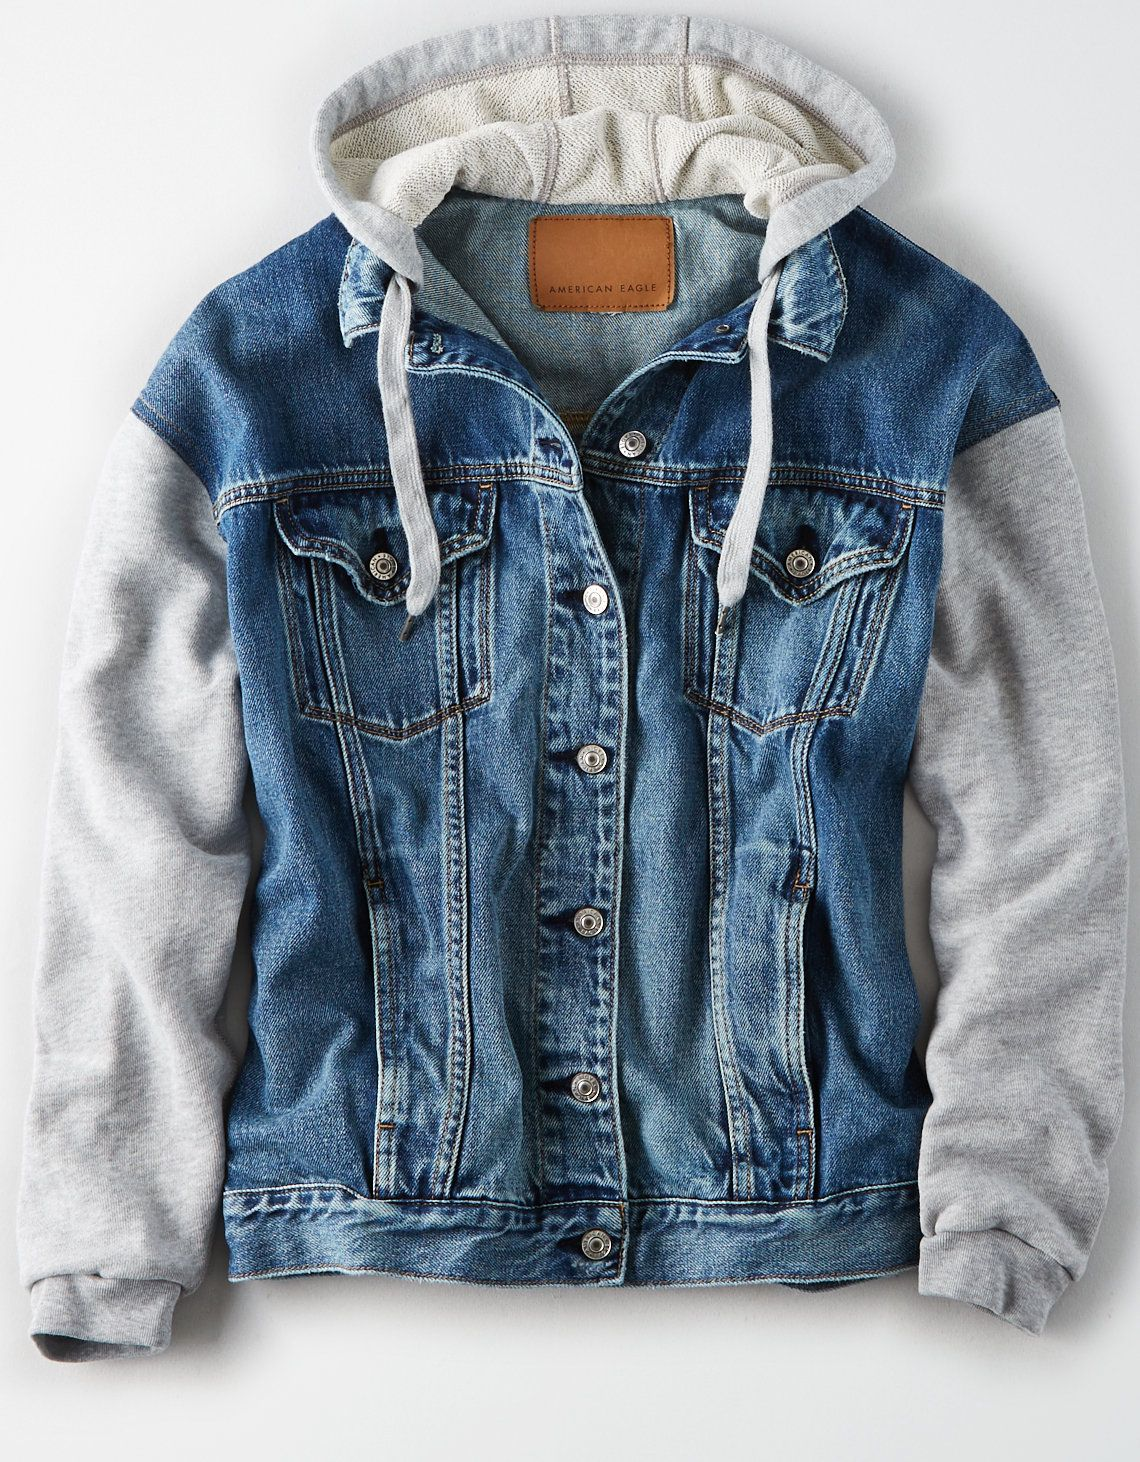 American Eagle Outfitters Men S Women S Clothing Shoes Accessories Denim Jacket With Hoodie Hoodie Jacket Outfit Hooded Denim Jacket [ 1462 x 1140 Pixel ]